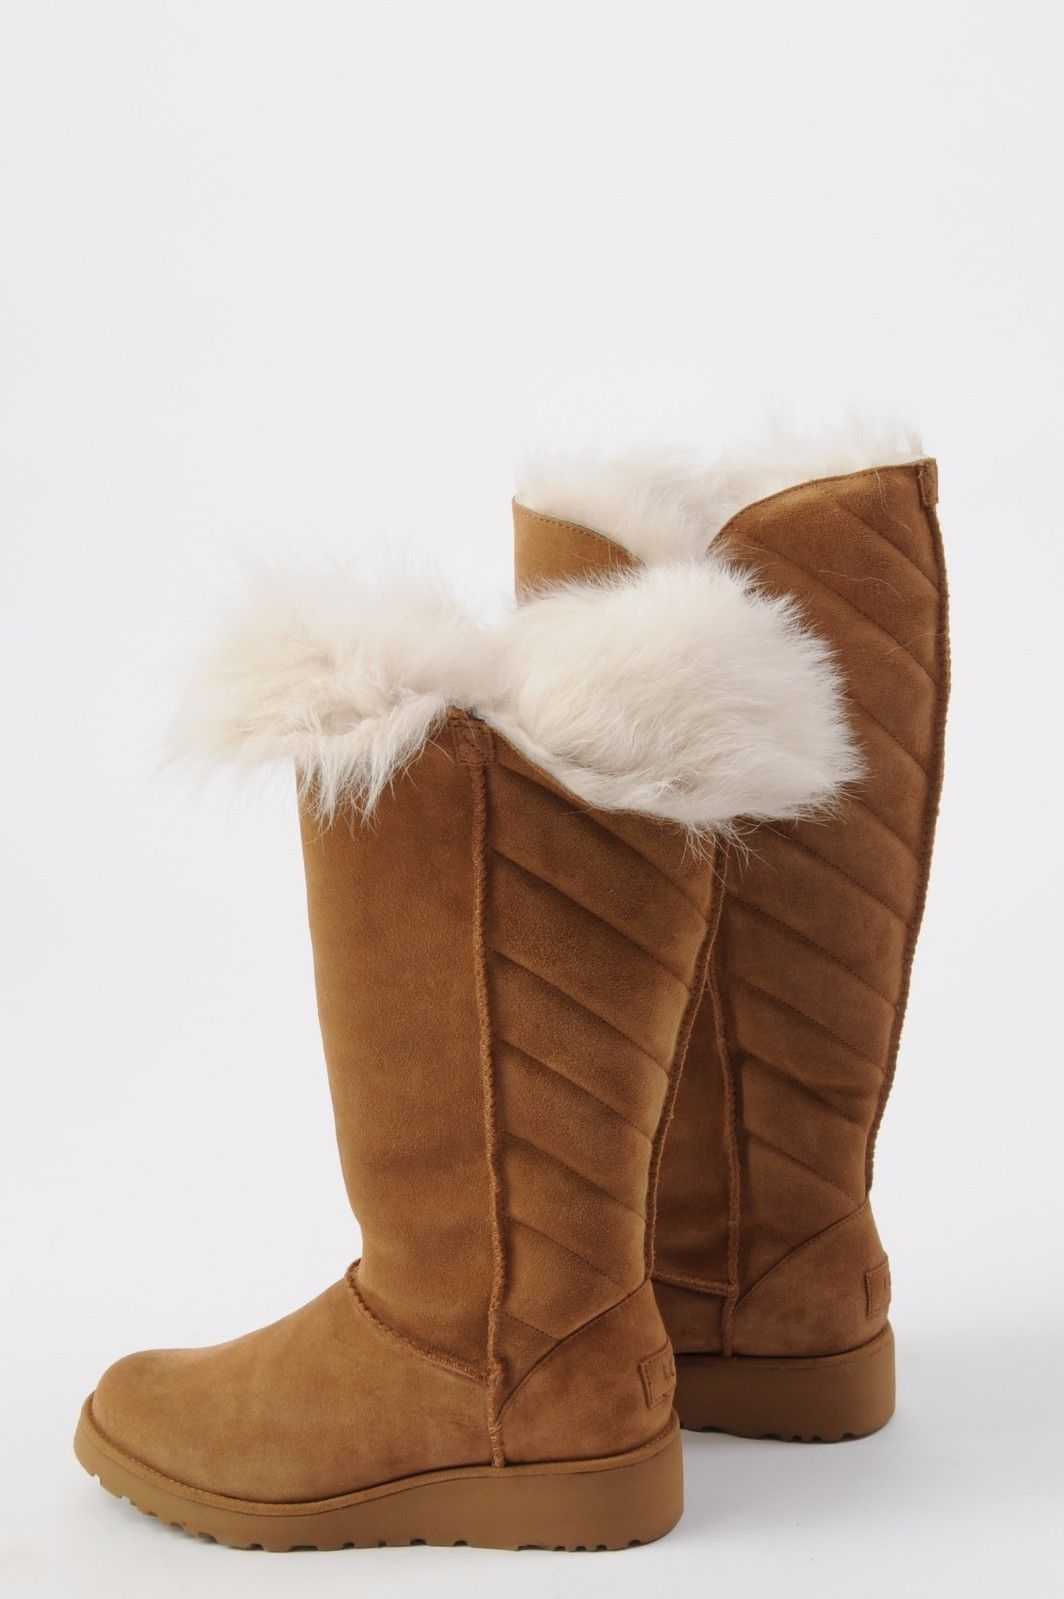 070b168bc73 NEW Women's Ugg Rosalind Tall Boots Cuff Size 7 Chestnut Uggs Suede ...